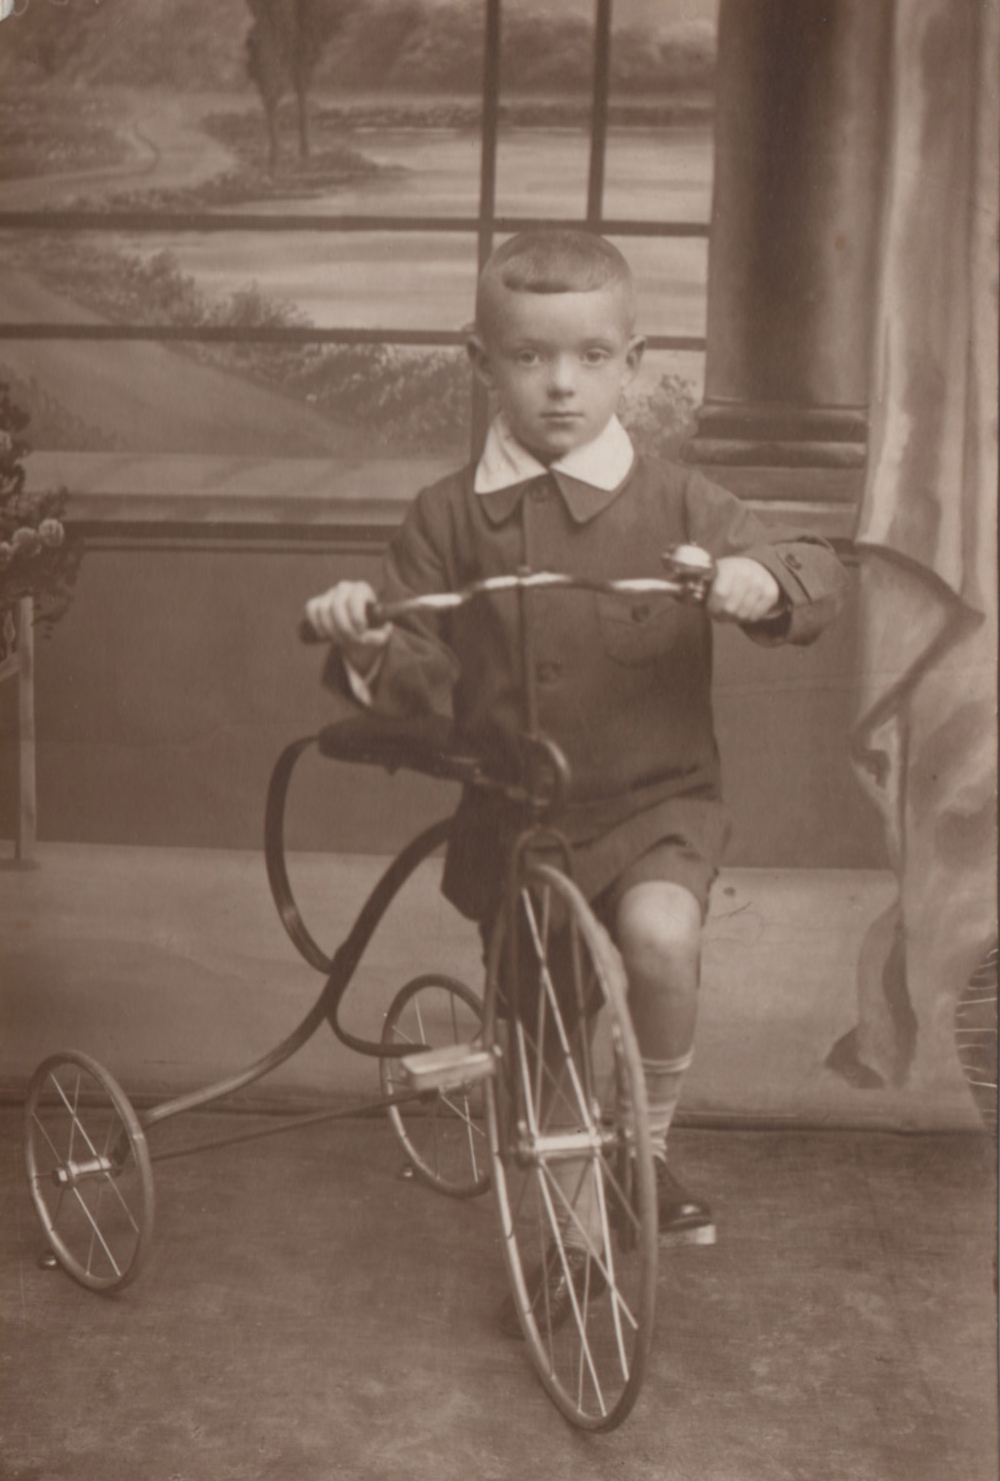 My father, Edward Hawthorne (then Yitzhak Herszkorn), as a boy in prewar Grojec, Poland